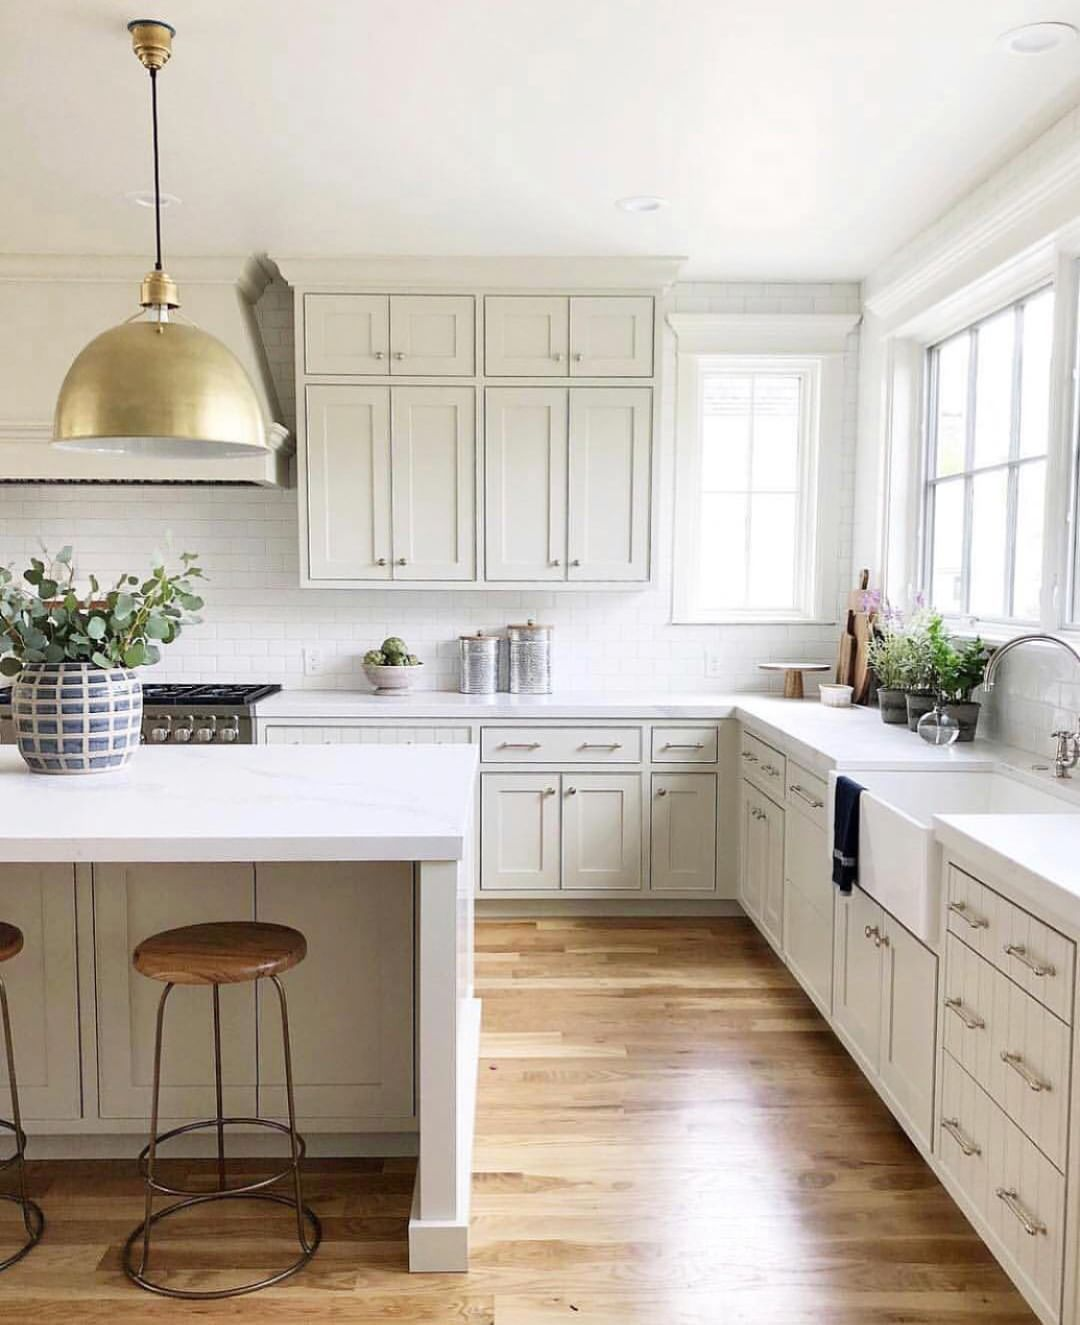 Light Up Your Kitchen By Hanging 2 3 Pendant Lights Over Your Island Spotted The Eugene Pendant In T Contemporary Style Kitchen Kitchen Trends Kitchen Remodel